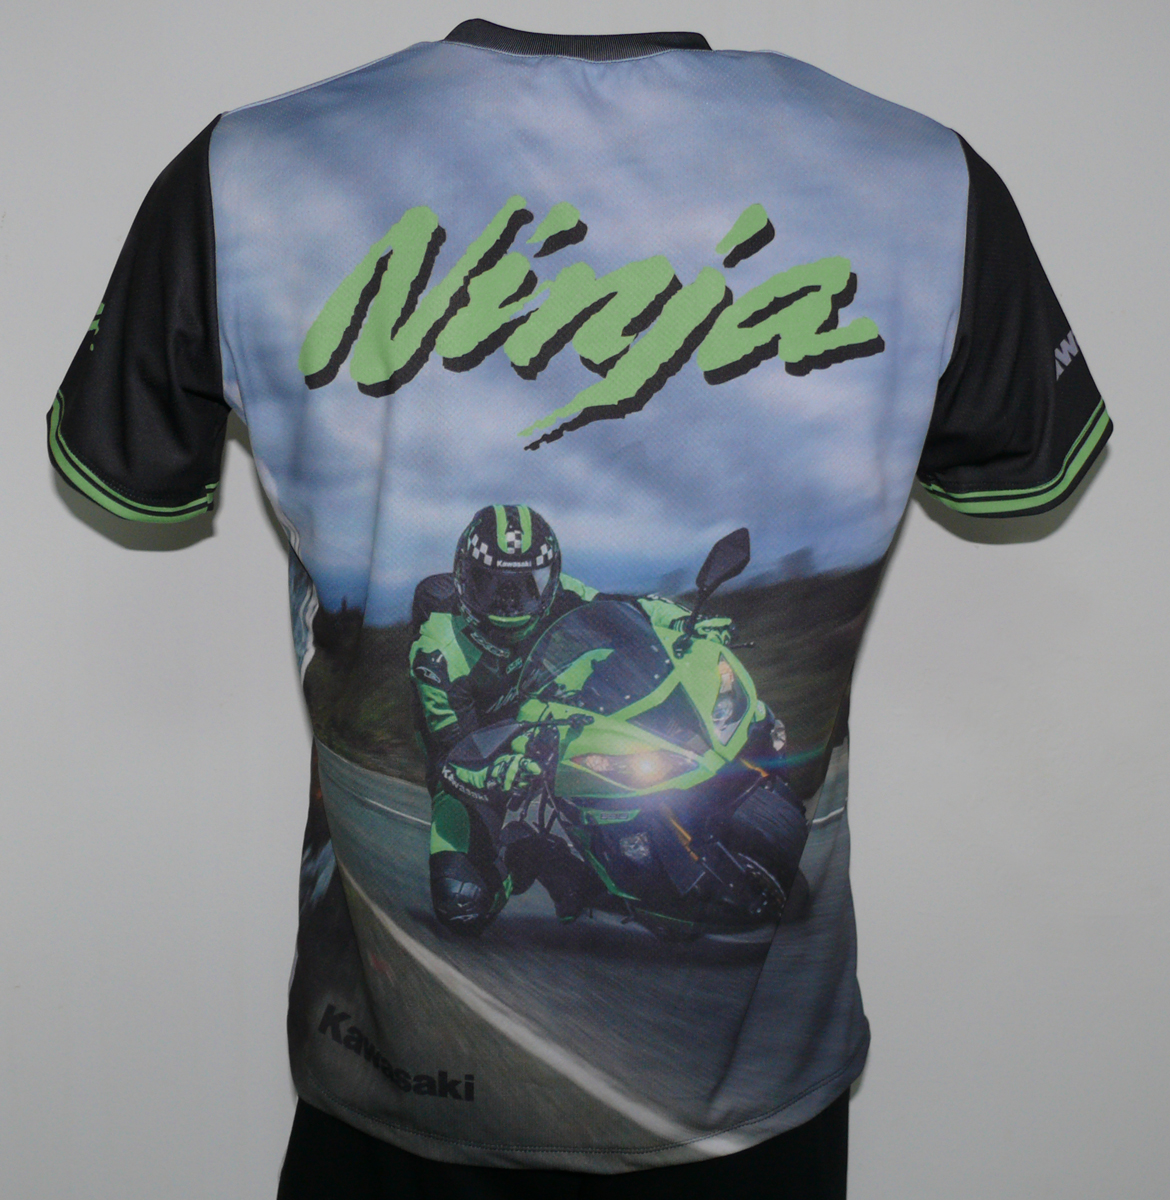 Kawasaki Ninja T Shirt With Logo And All Over Printed Picture T Shirts With All Kind Of Auto